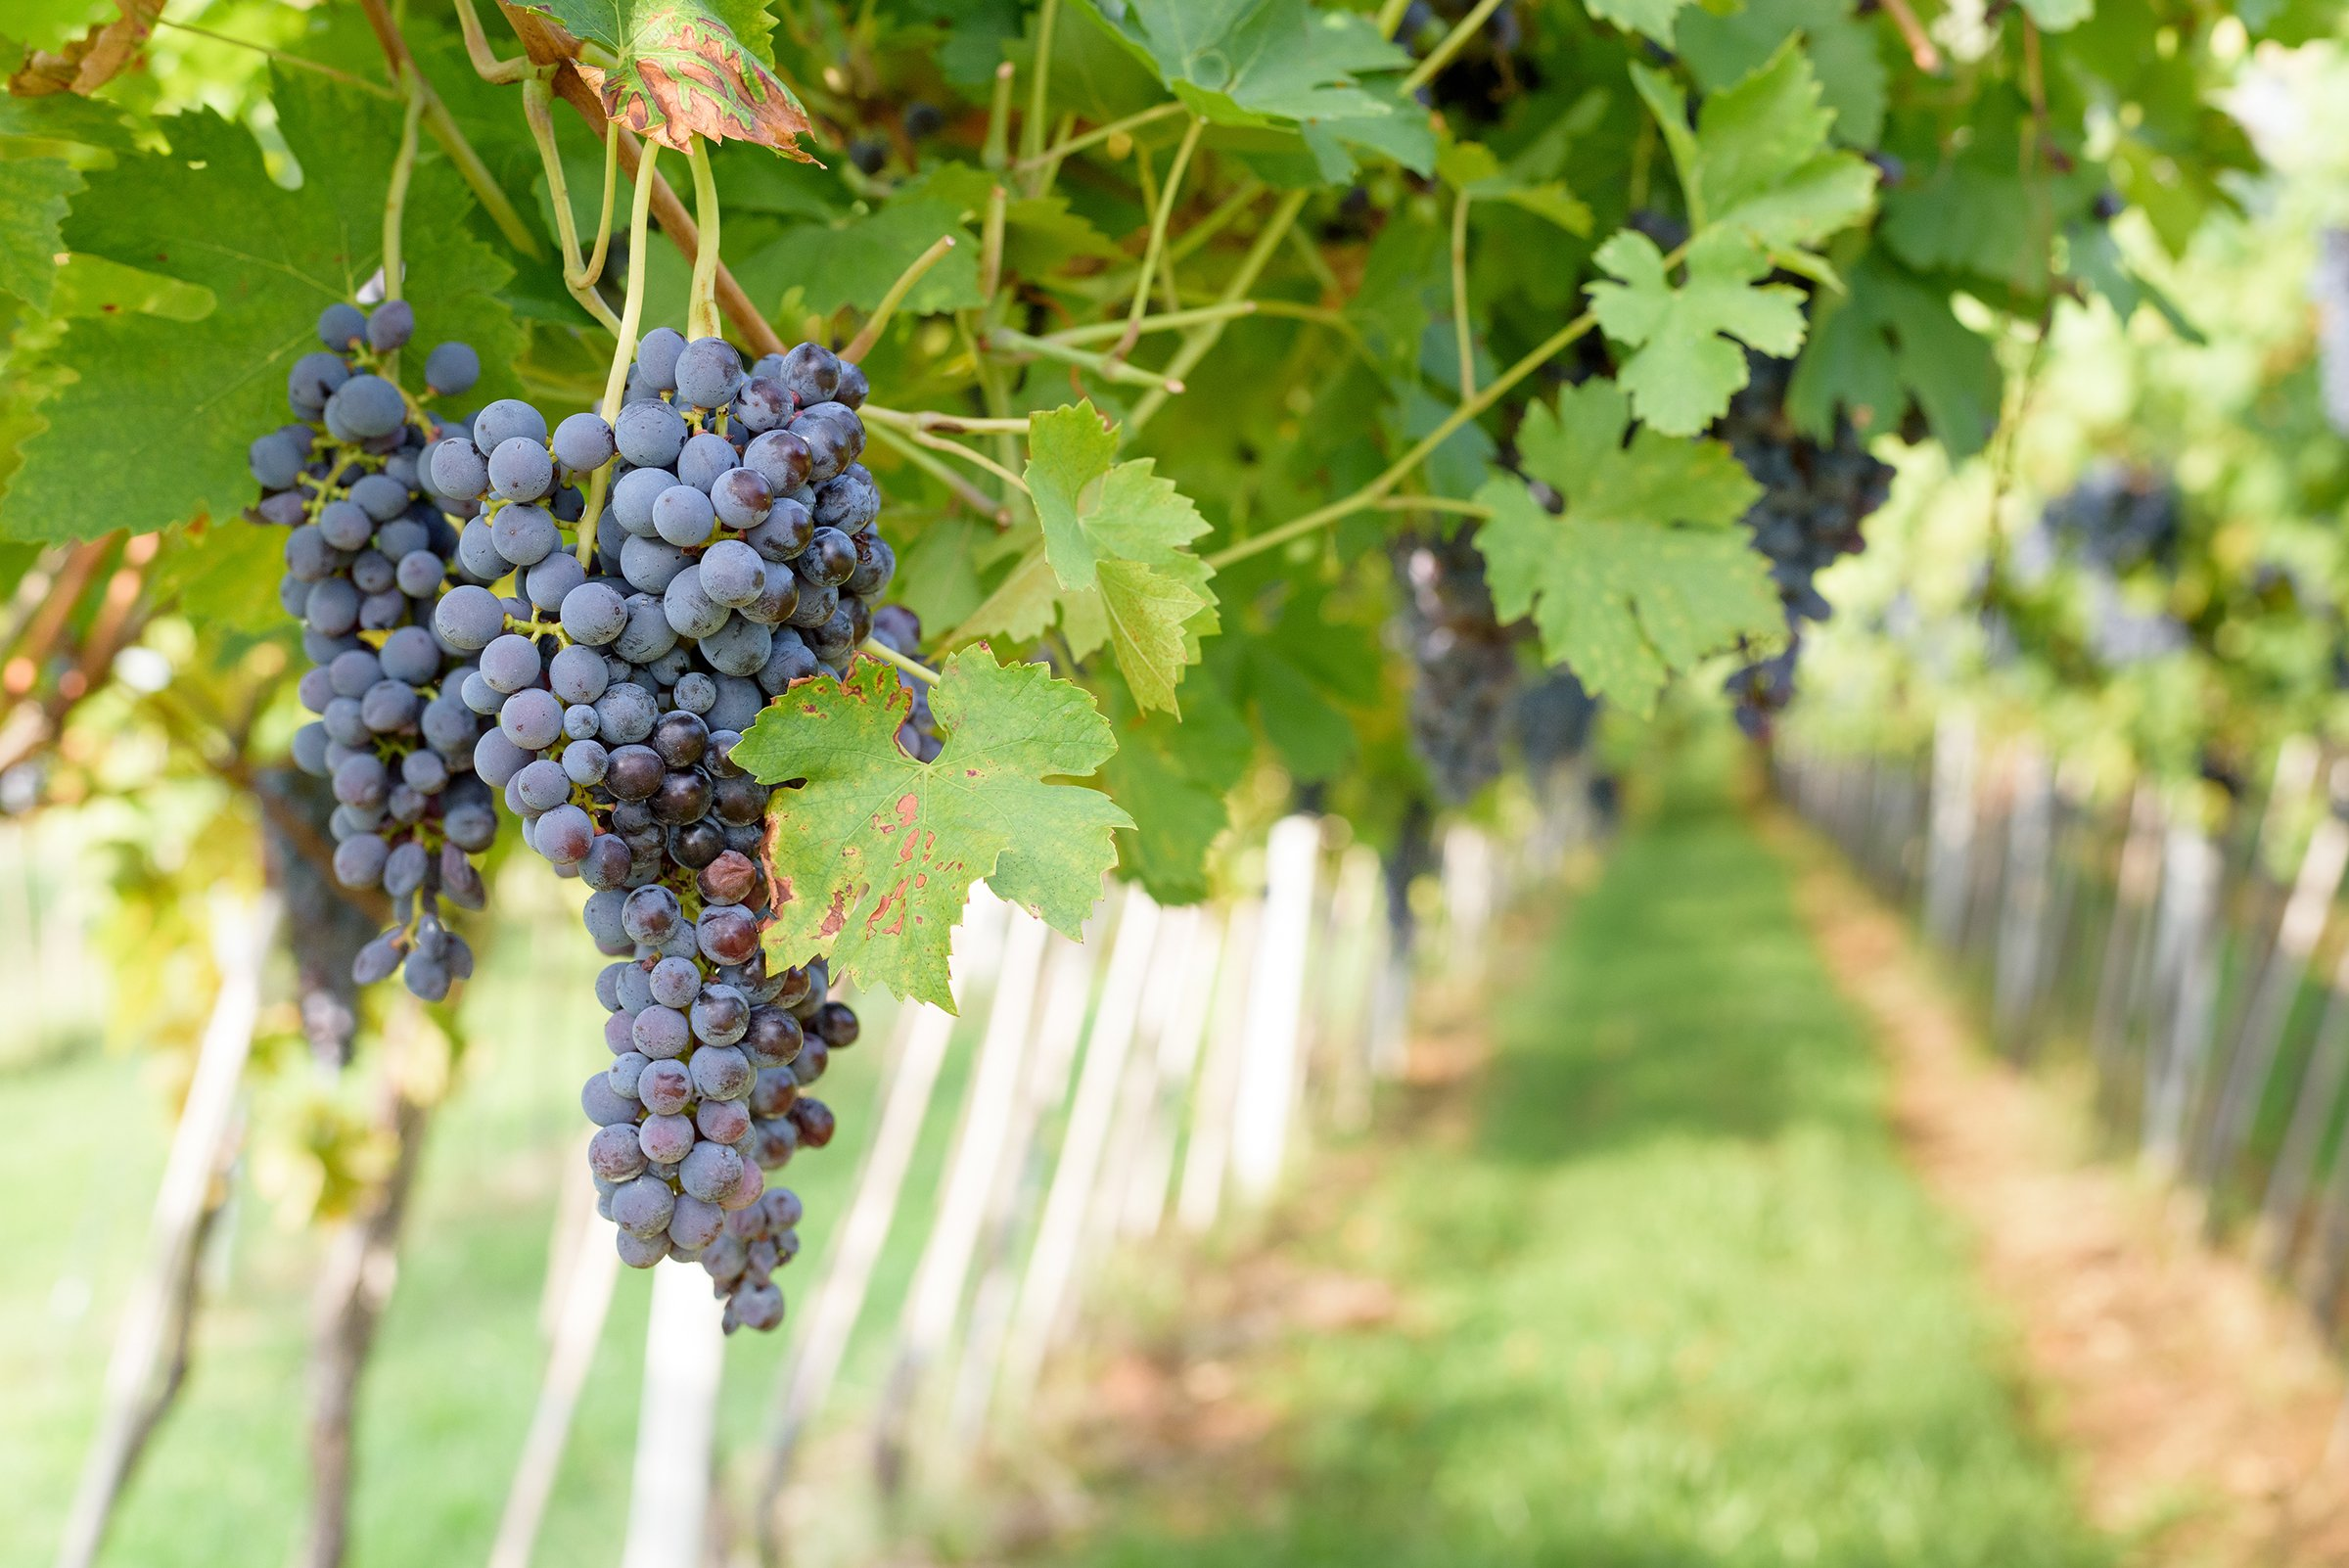 Bunches of ripered grapes ready to be picked up and will become a tasty wine like Valpolicella Amarone or Recioto